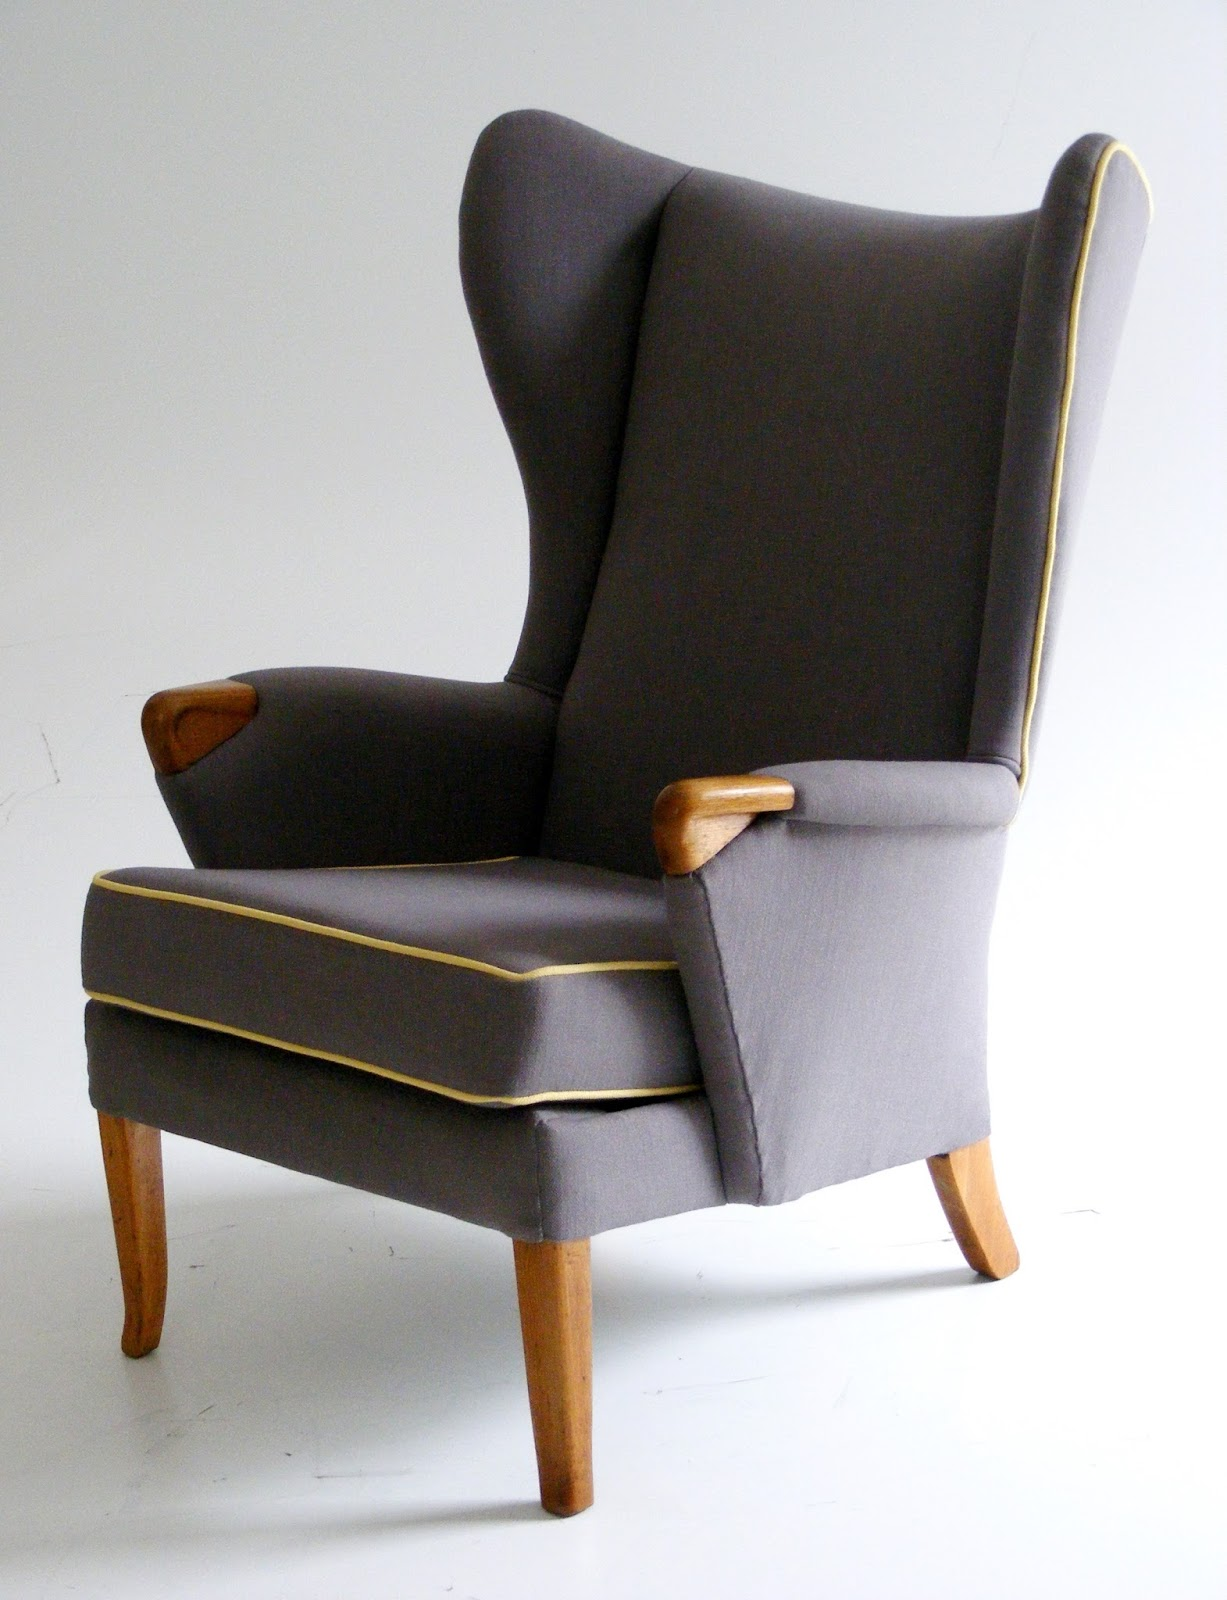 wingback rocking chair cape town step stool ikea vamp furniture this weeks new vintage stock at